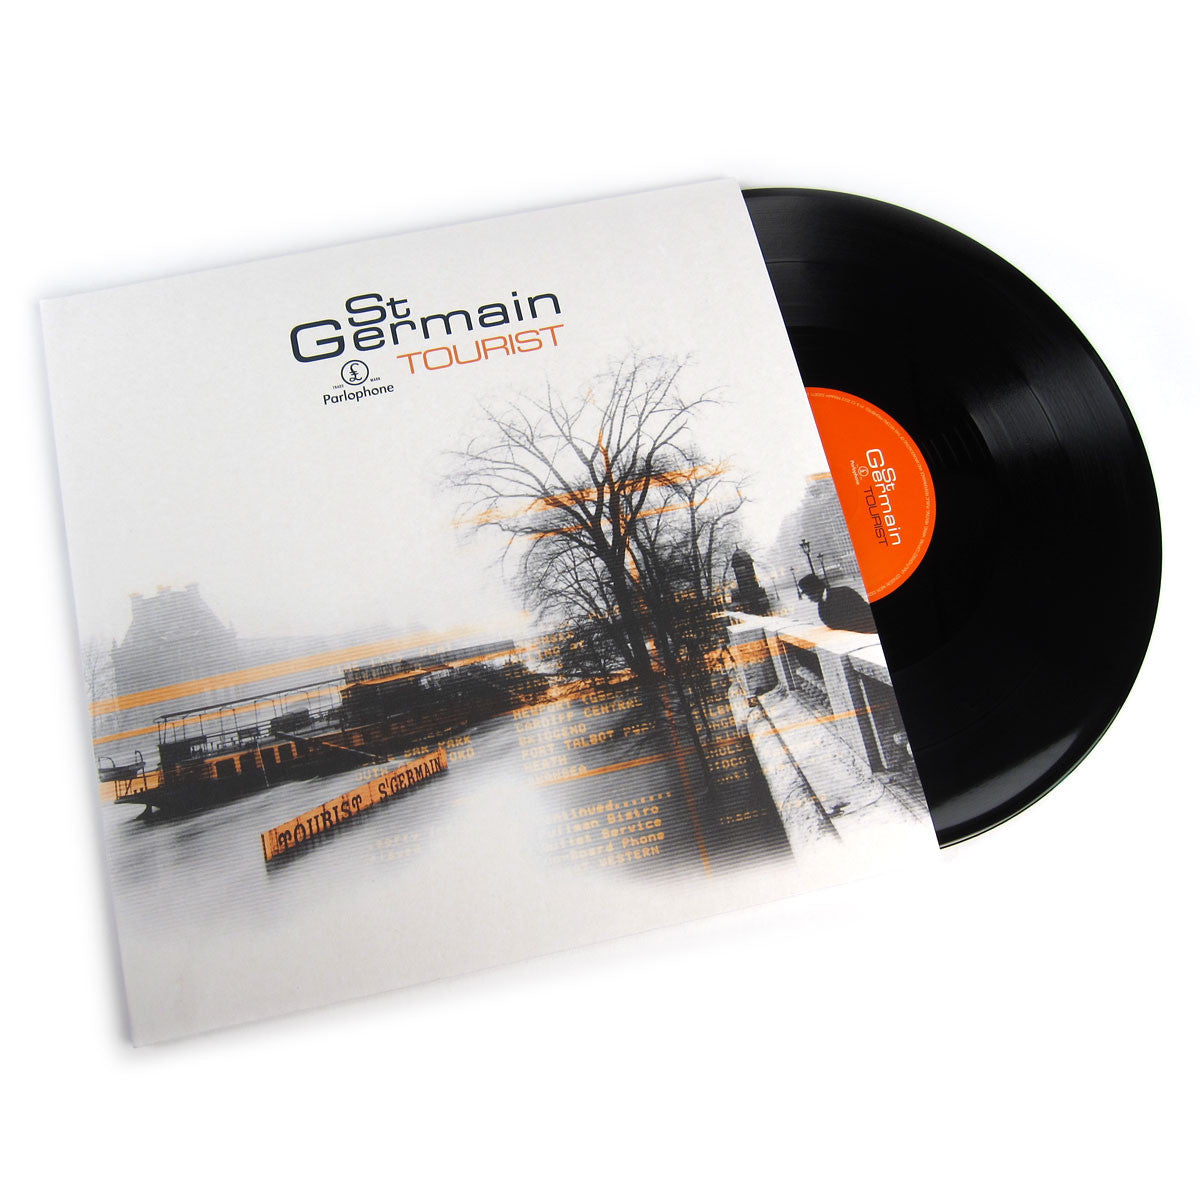 St. Germain: Tourist (180g) Vinyl 2LP